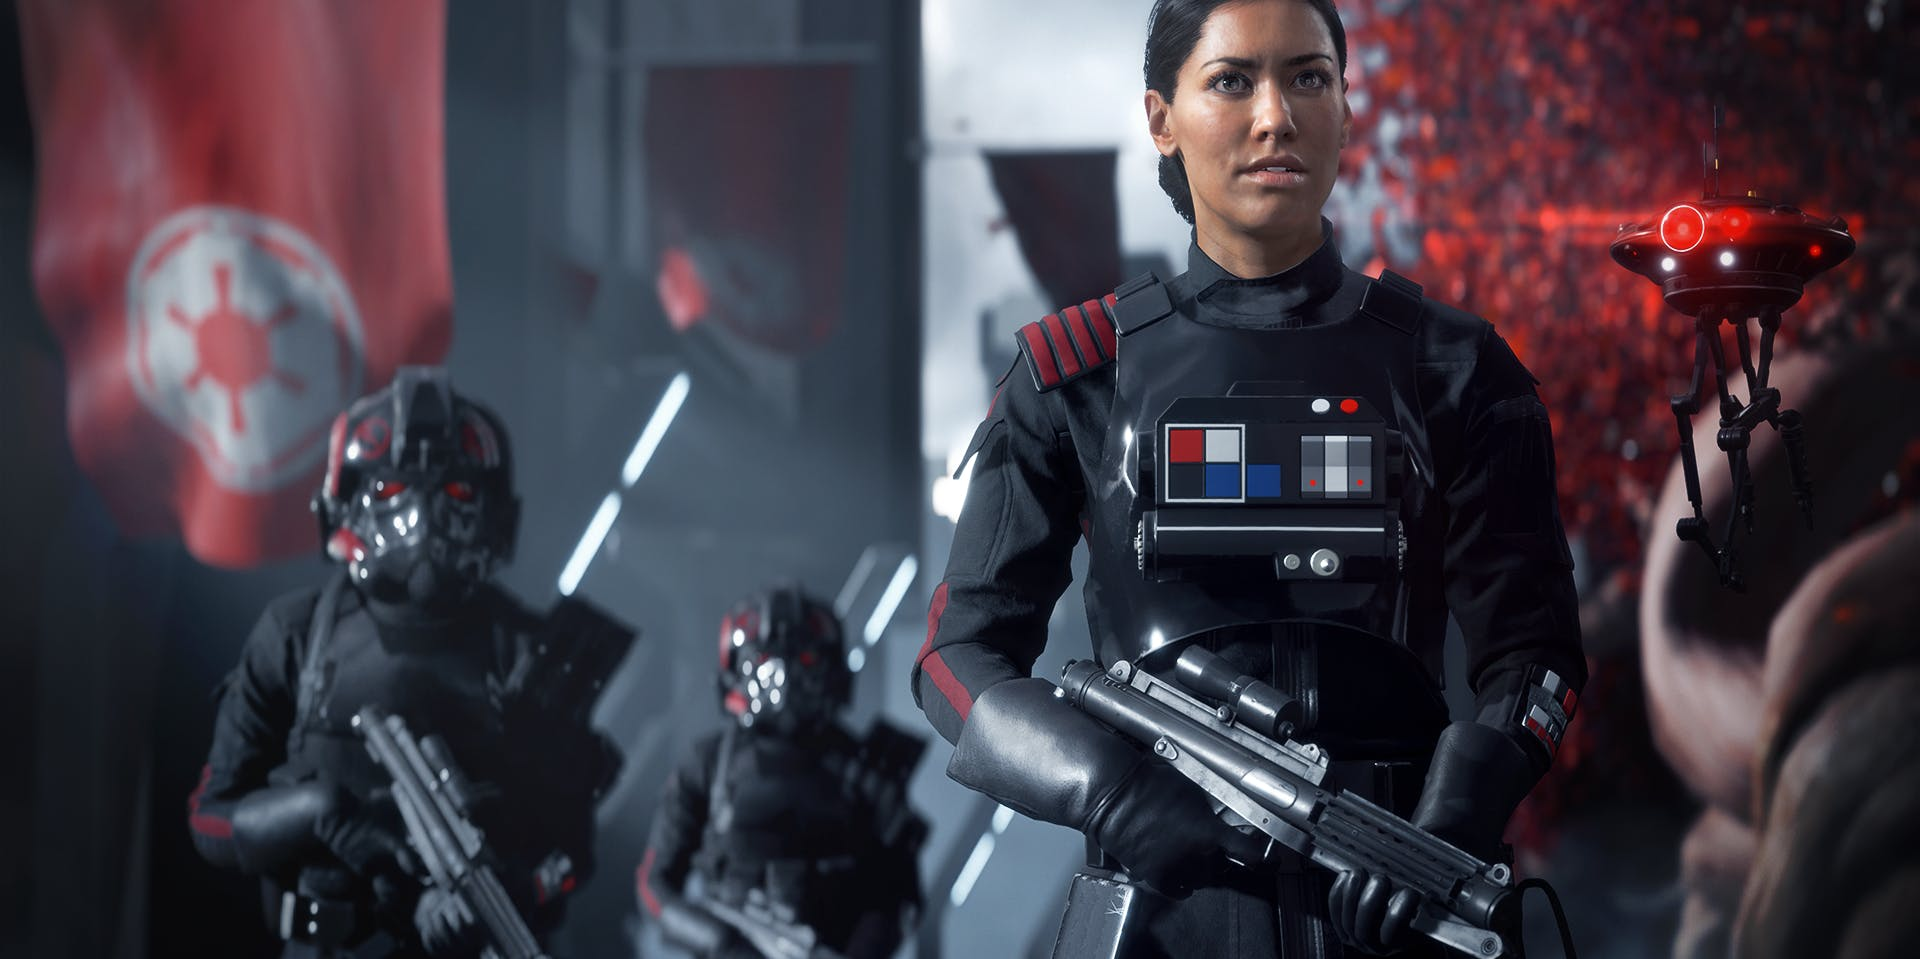 'Star Wars: Battlefront II' is Making Some Big Improvements